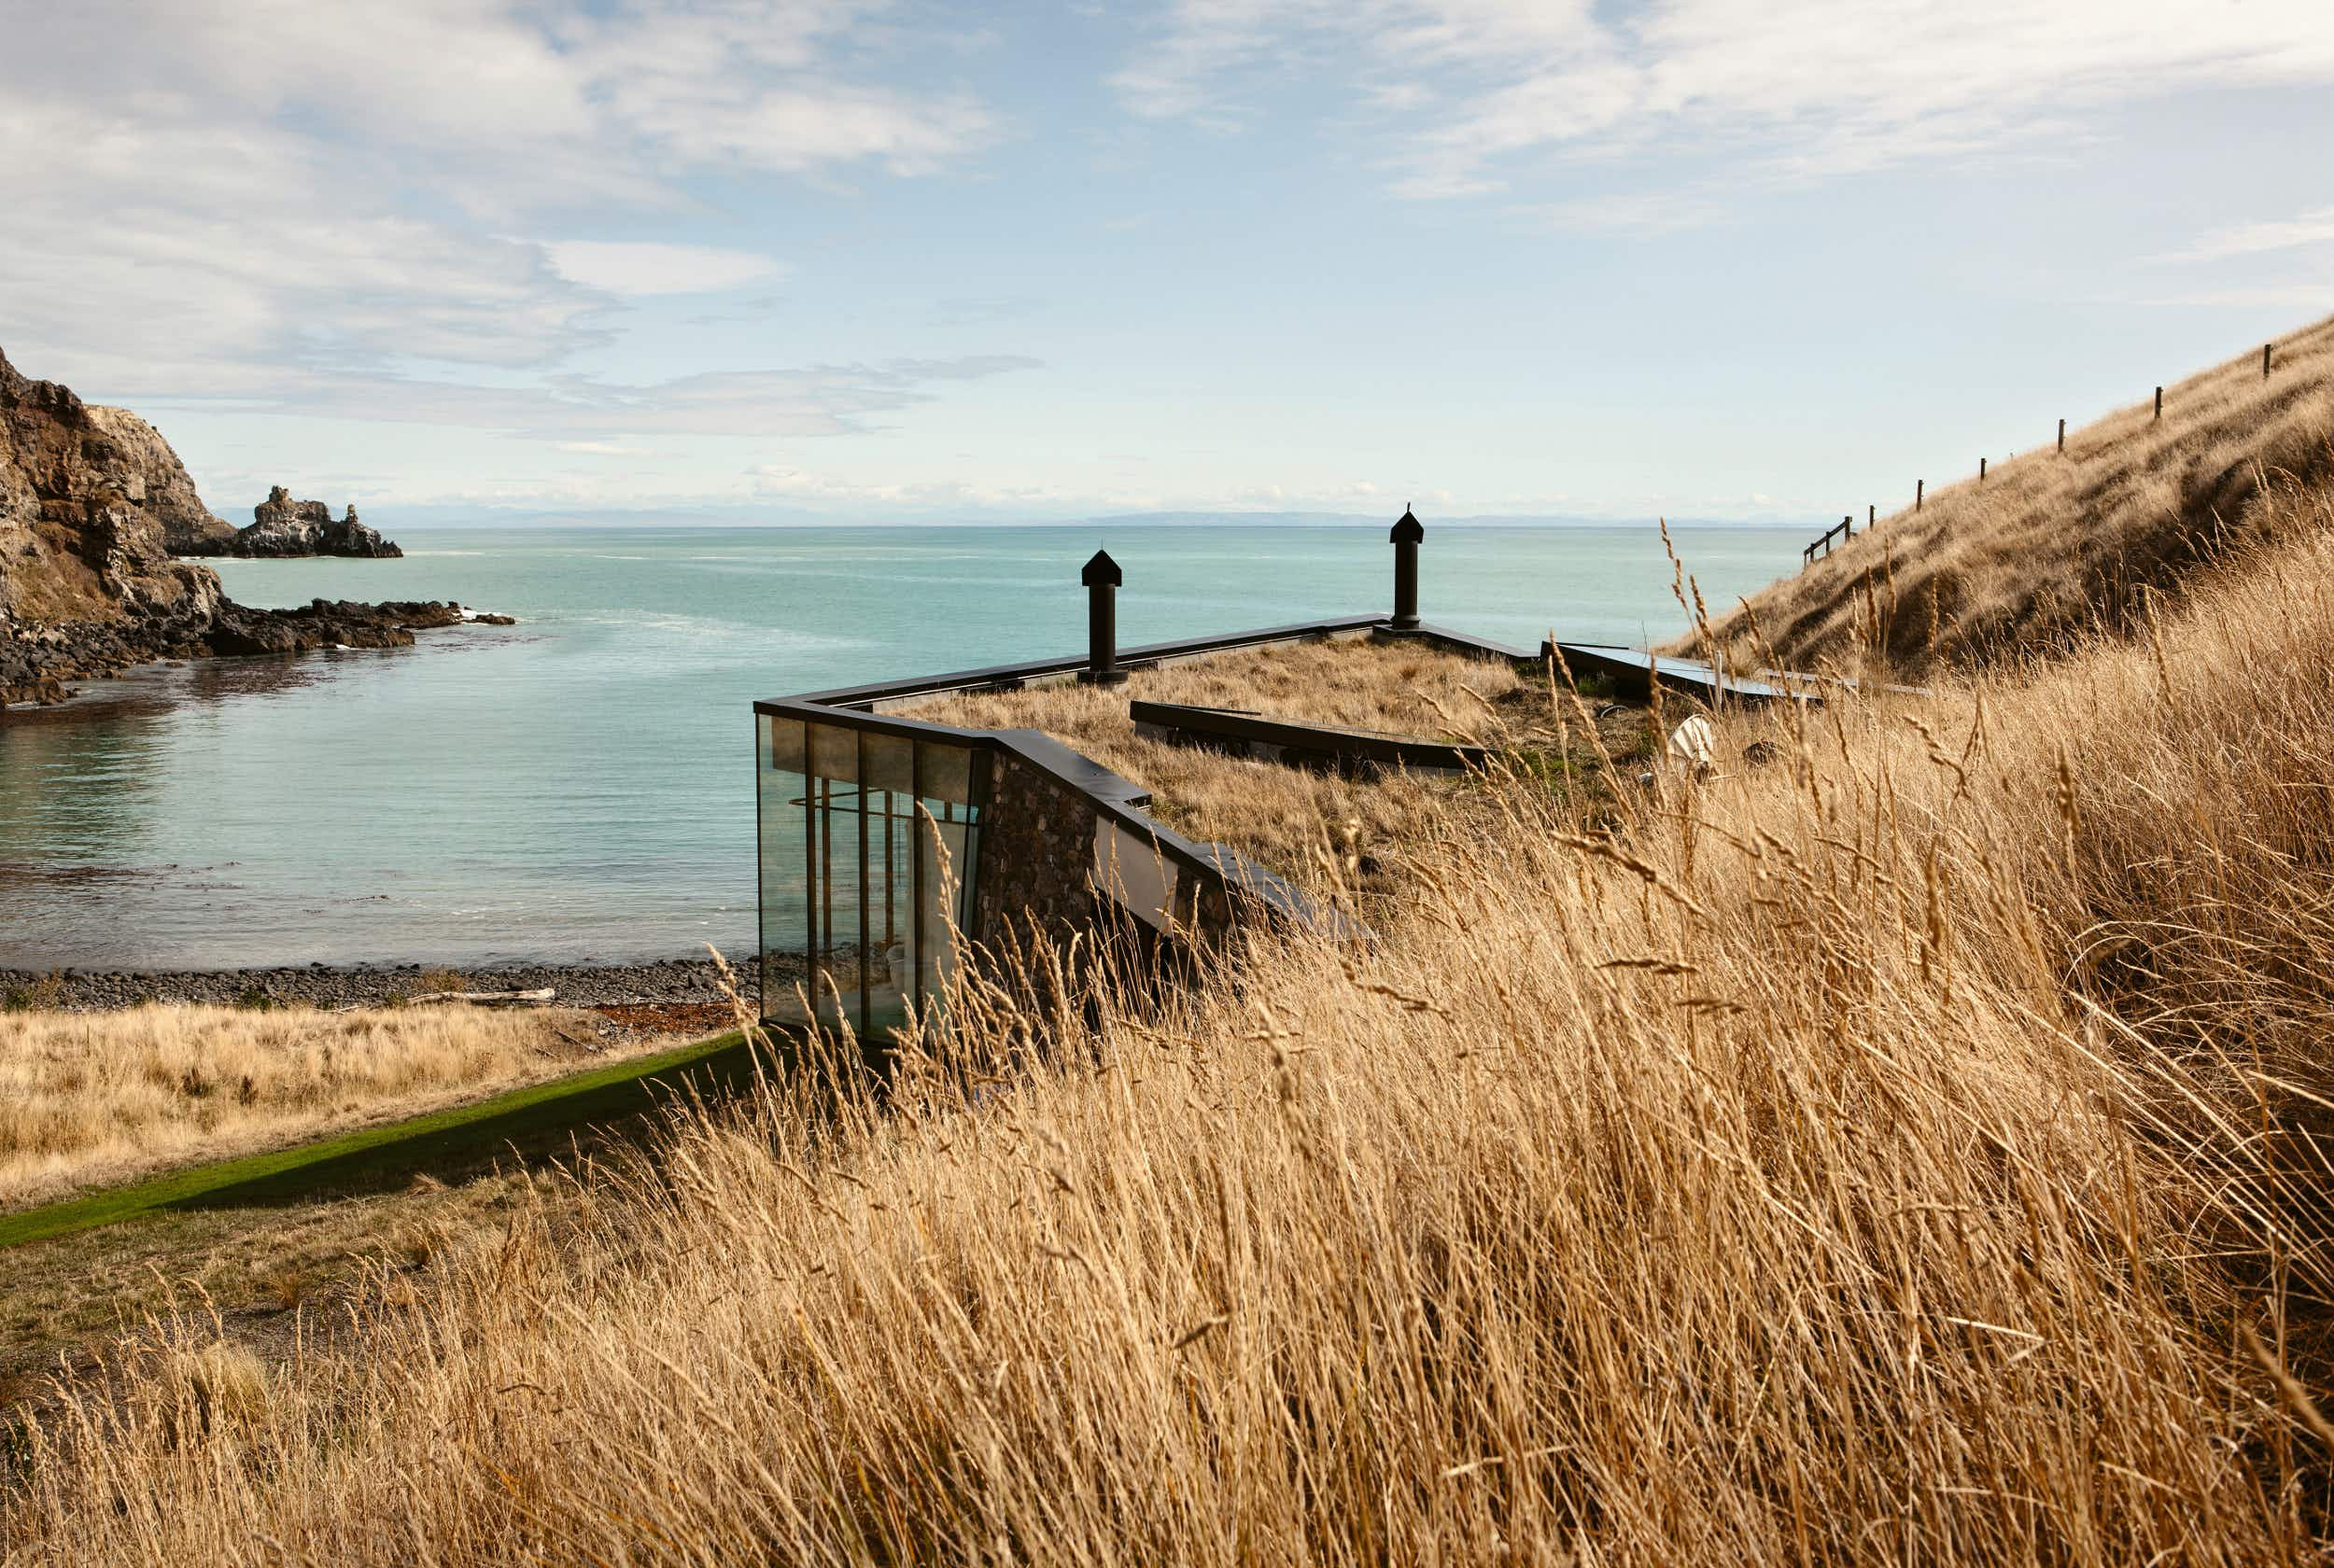 These homes have been selected as having the best ocean views around the world